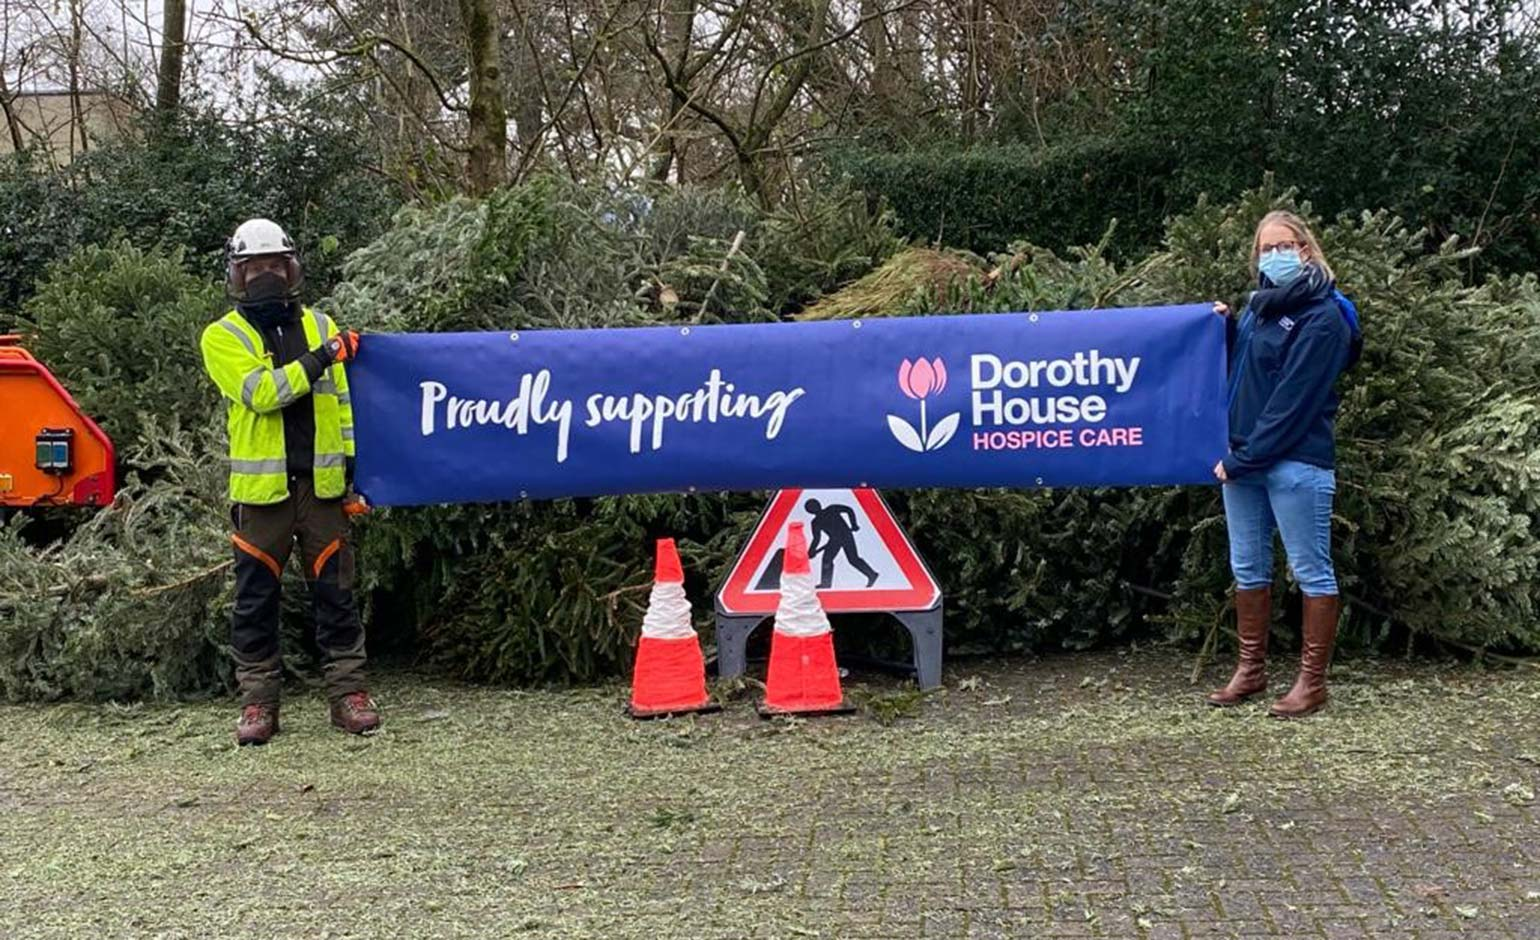 Dorothy House's annual Christmas tree campaign raises more than £66k